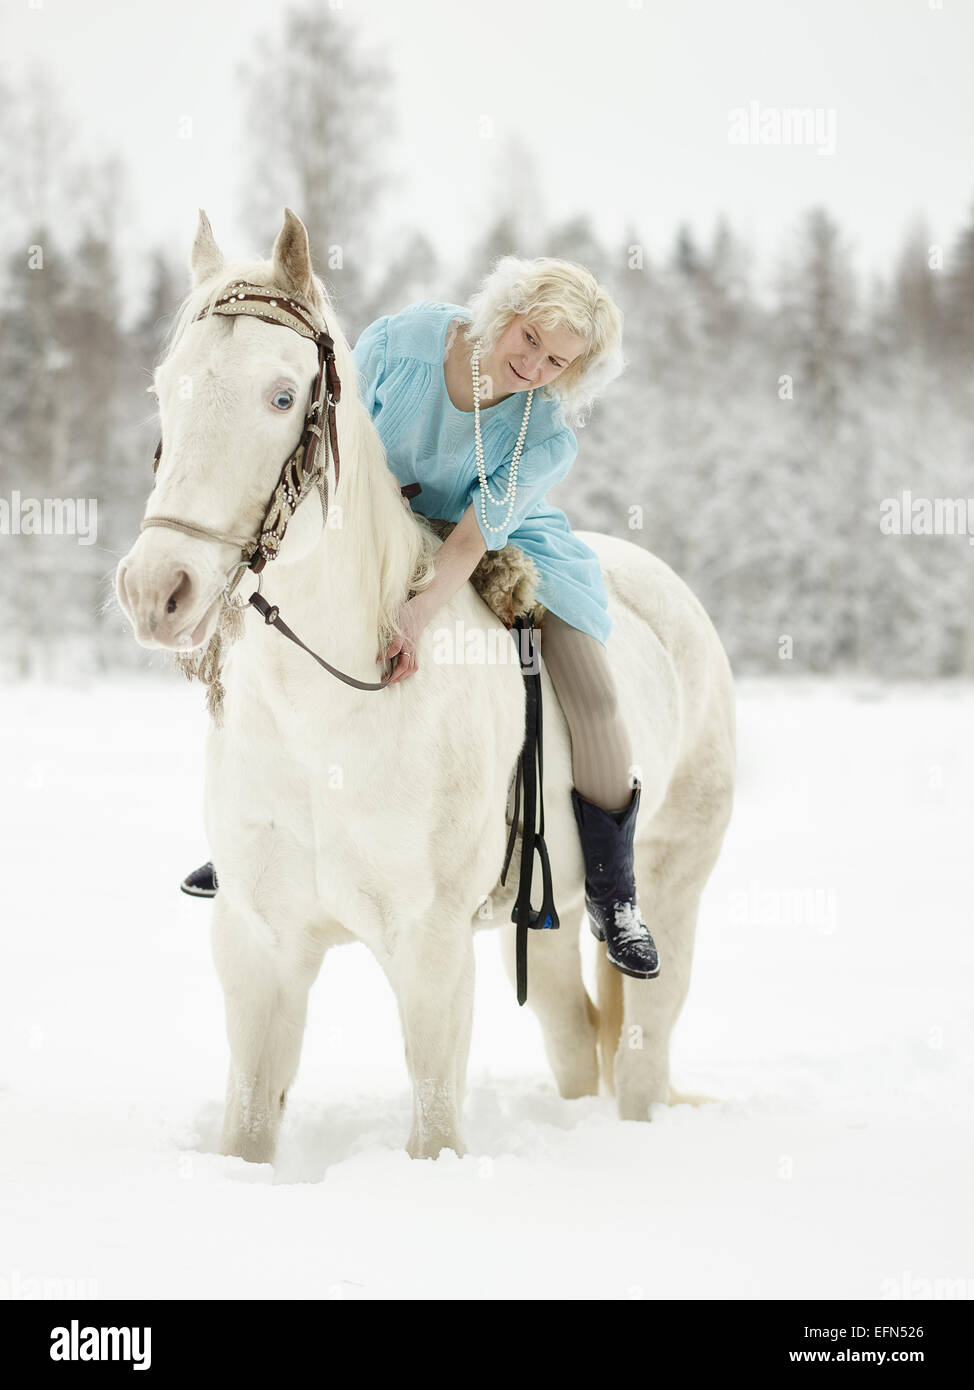 Attractive woman wearing blue dress and she riding a white horse - Stock Image